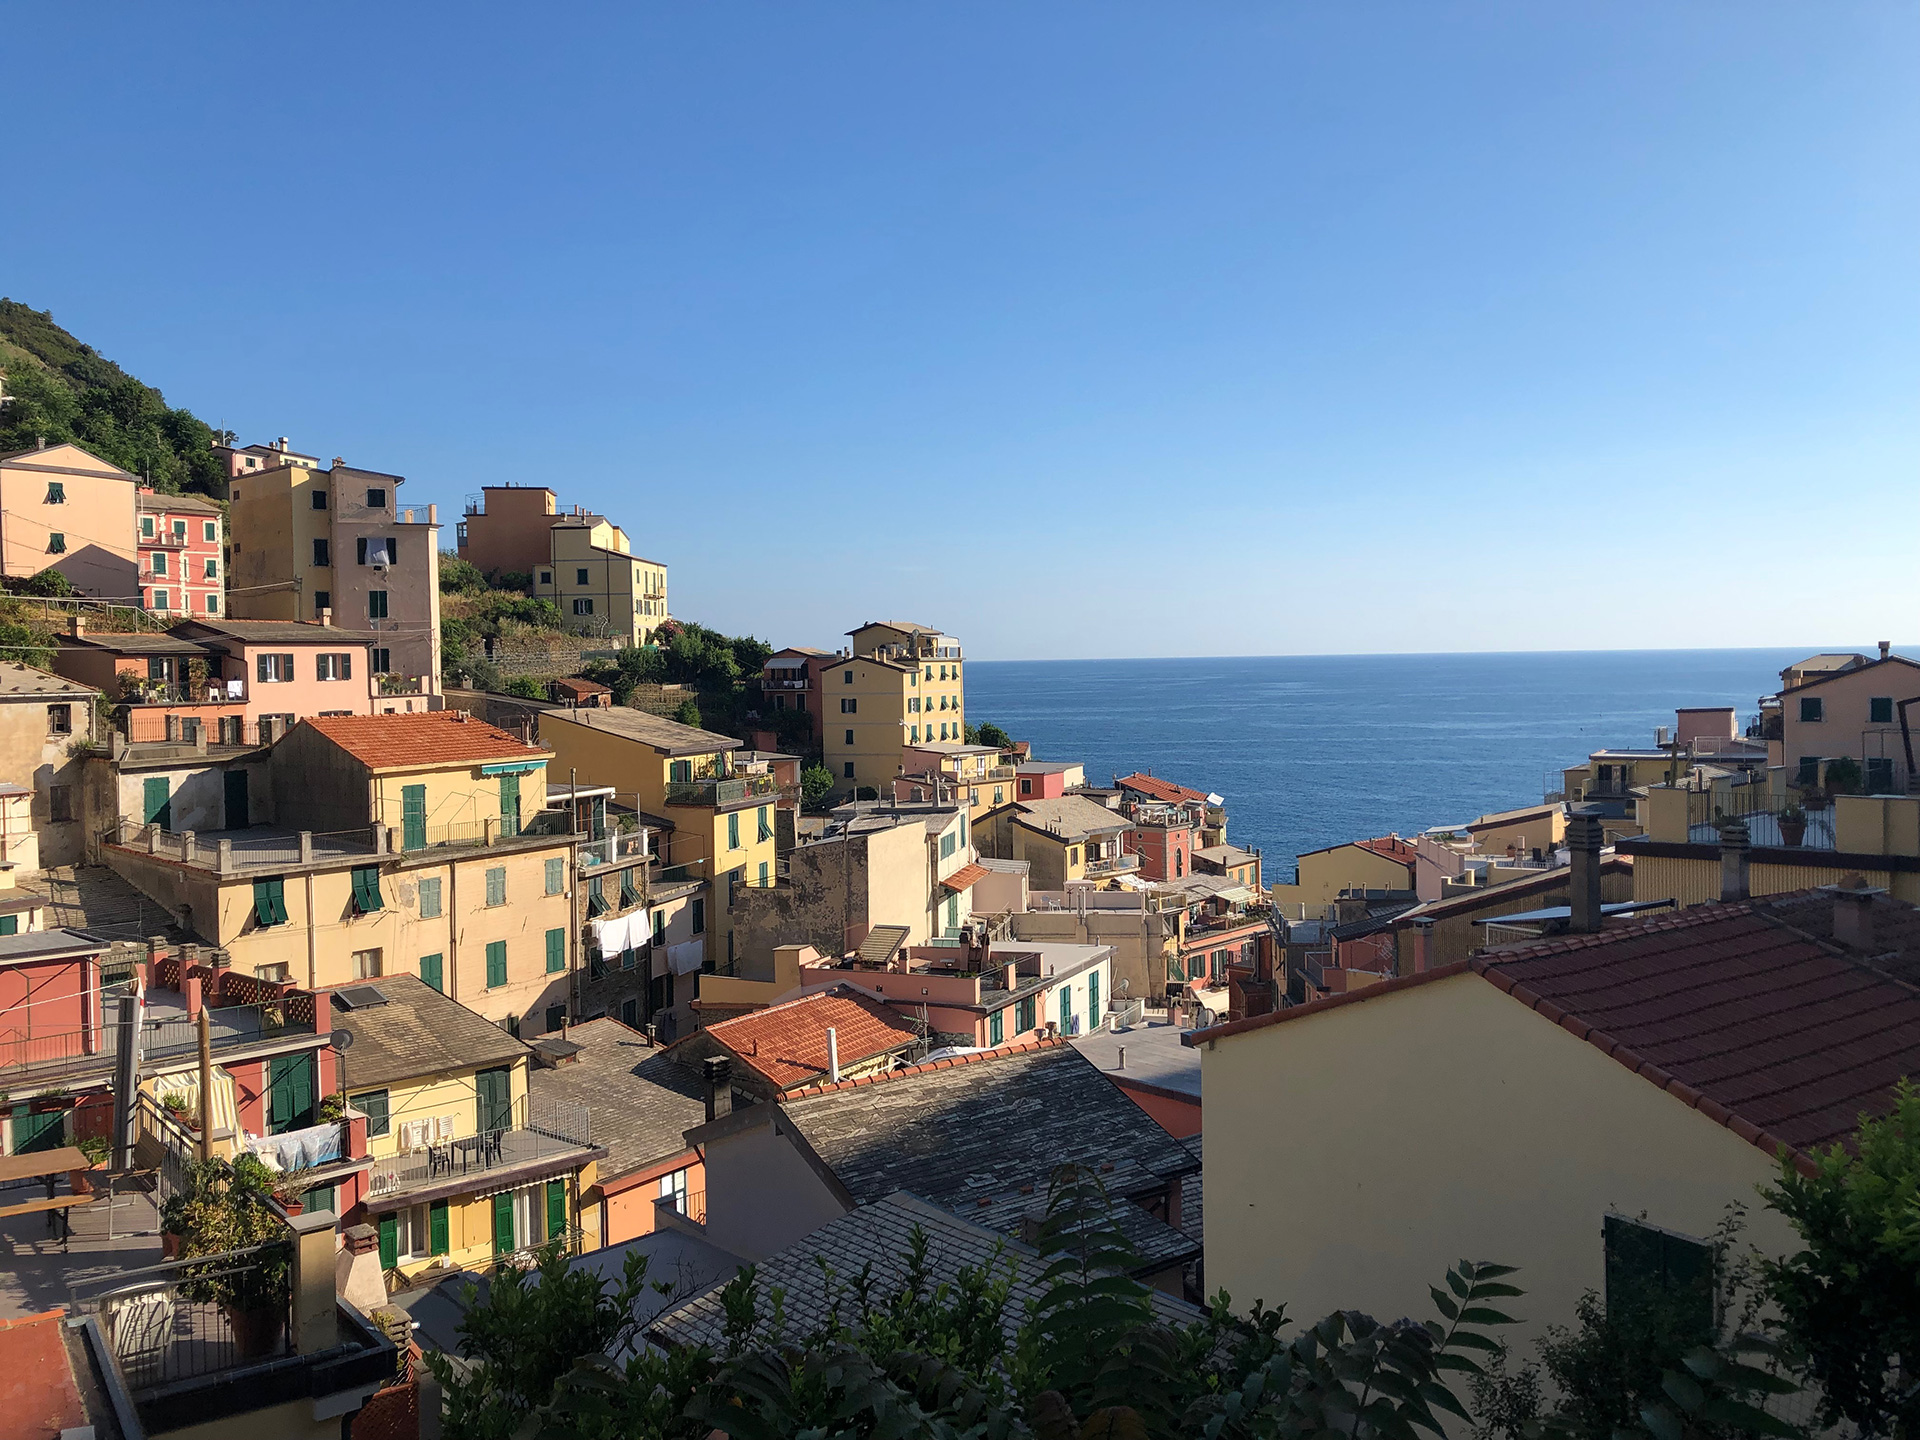 Homes at Cinque Terre | Cinque Terre| Italy| STIR